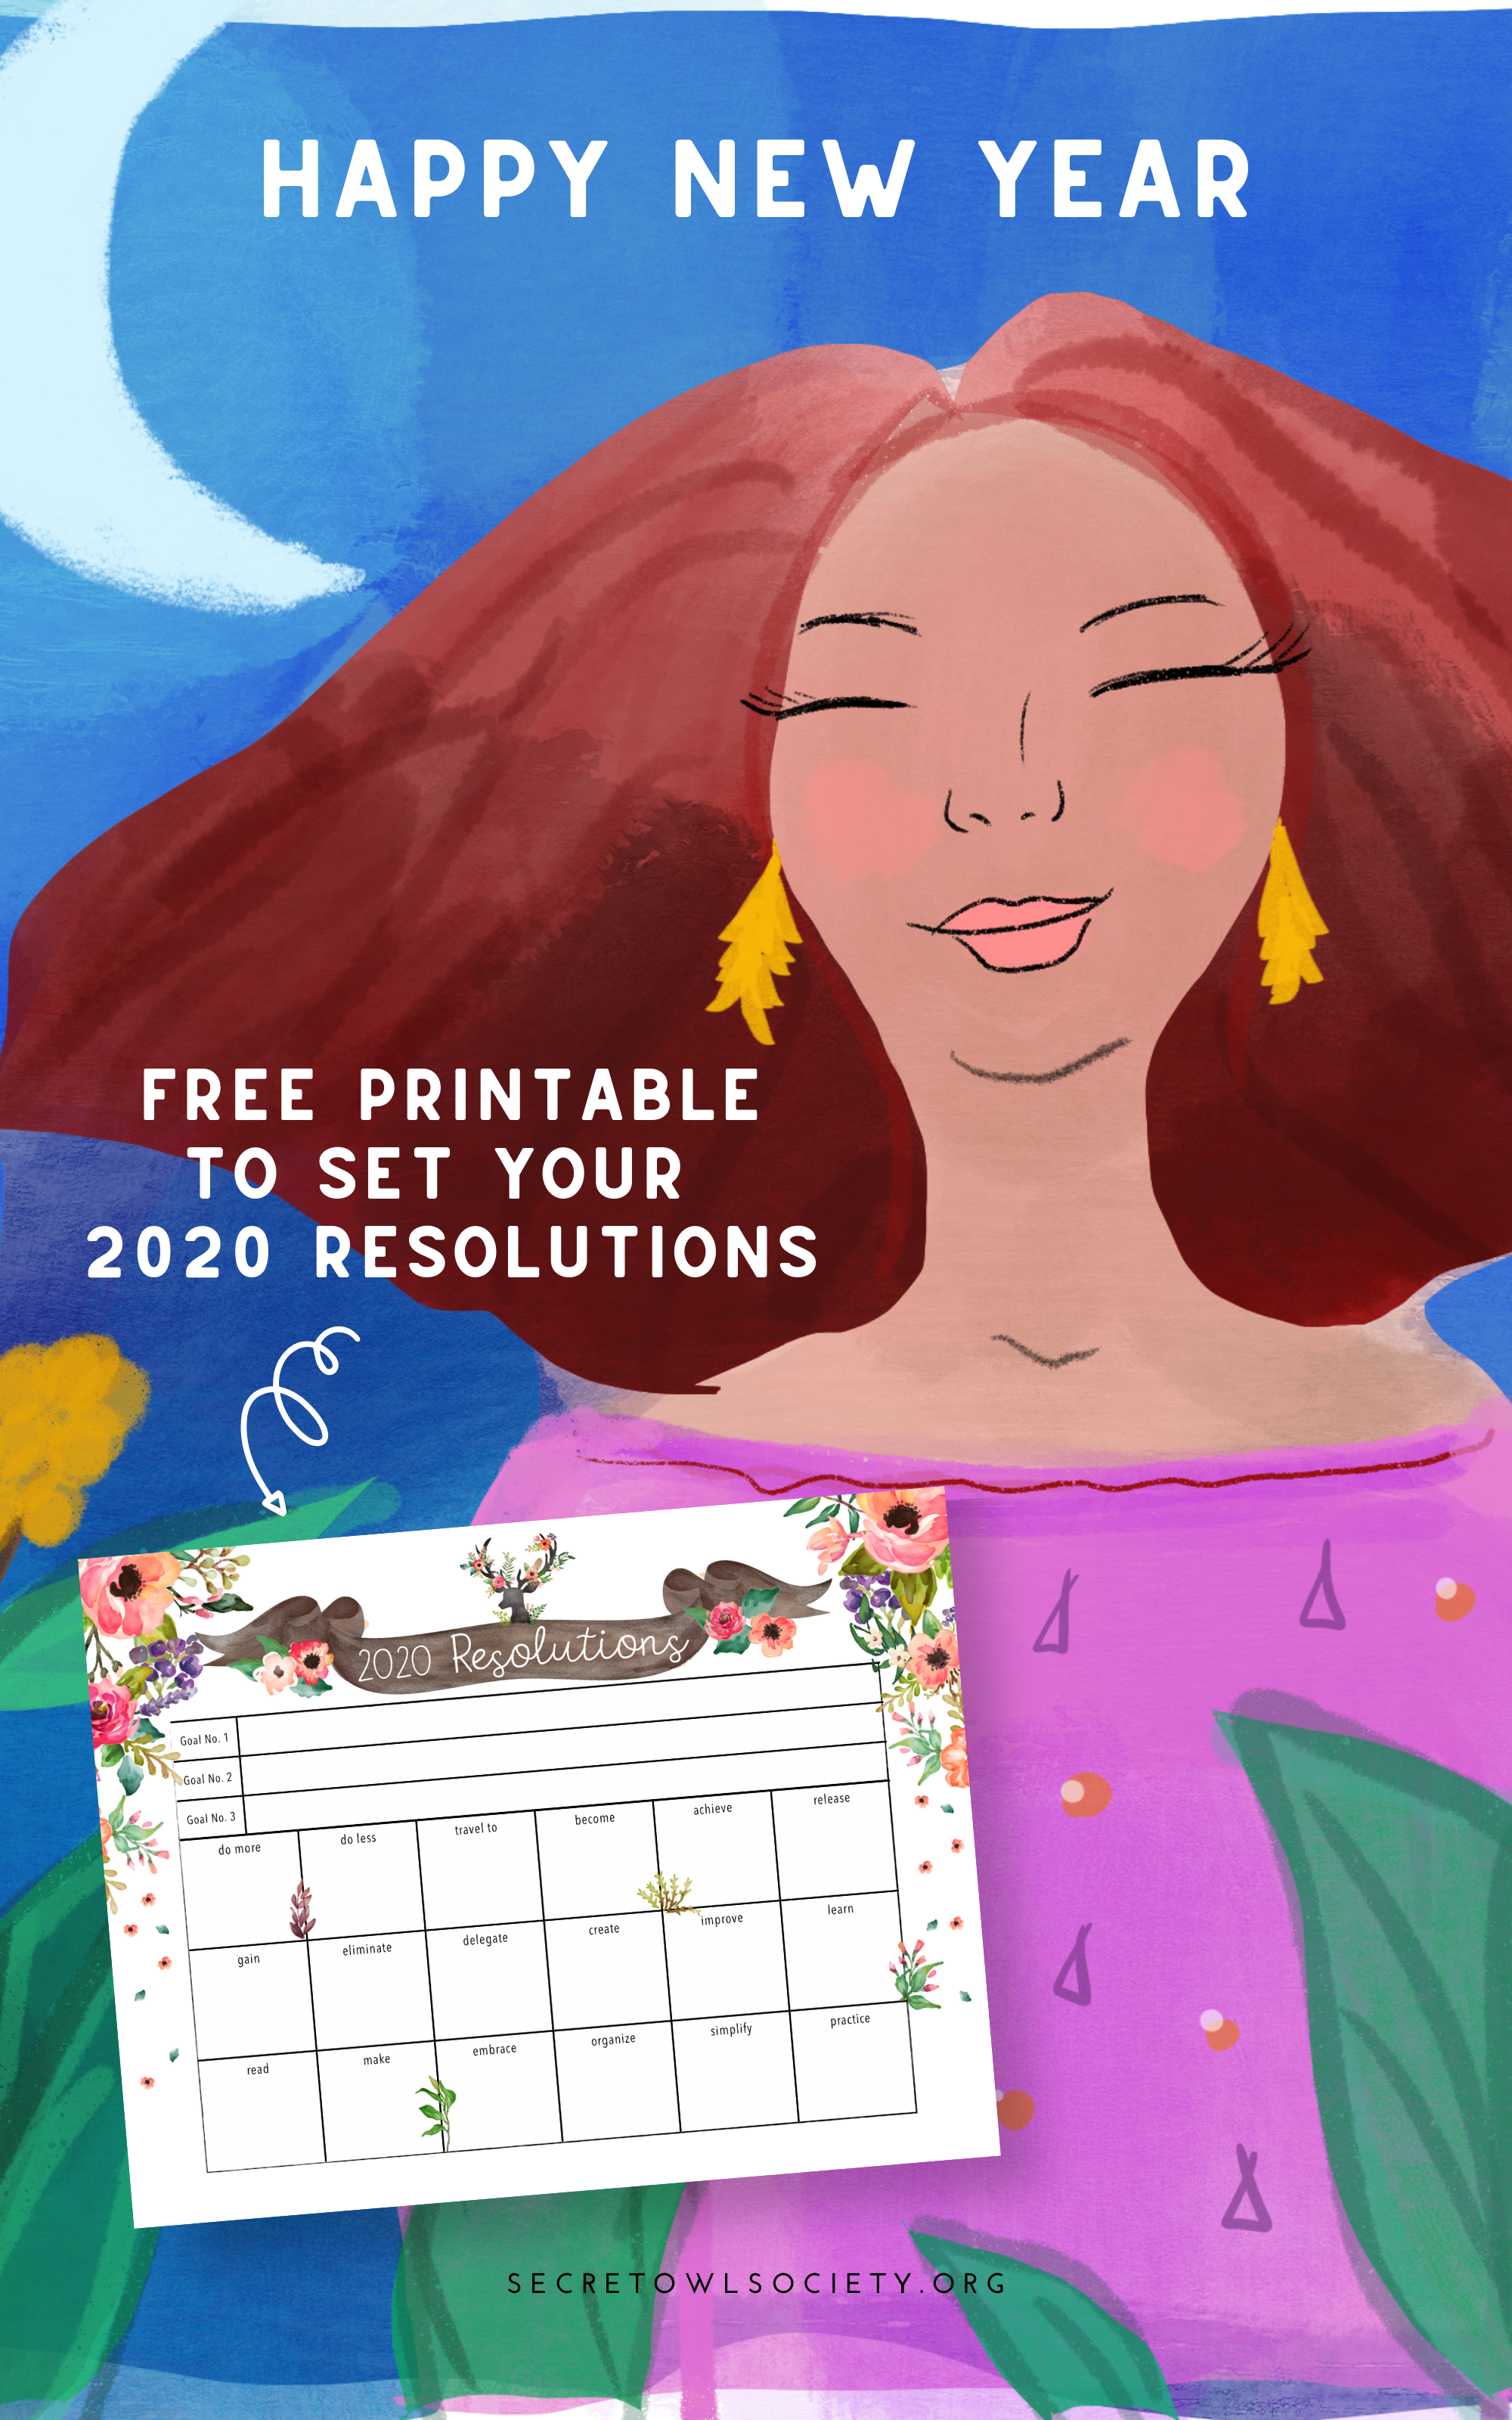 Free printable to set your resolutions for the new year